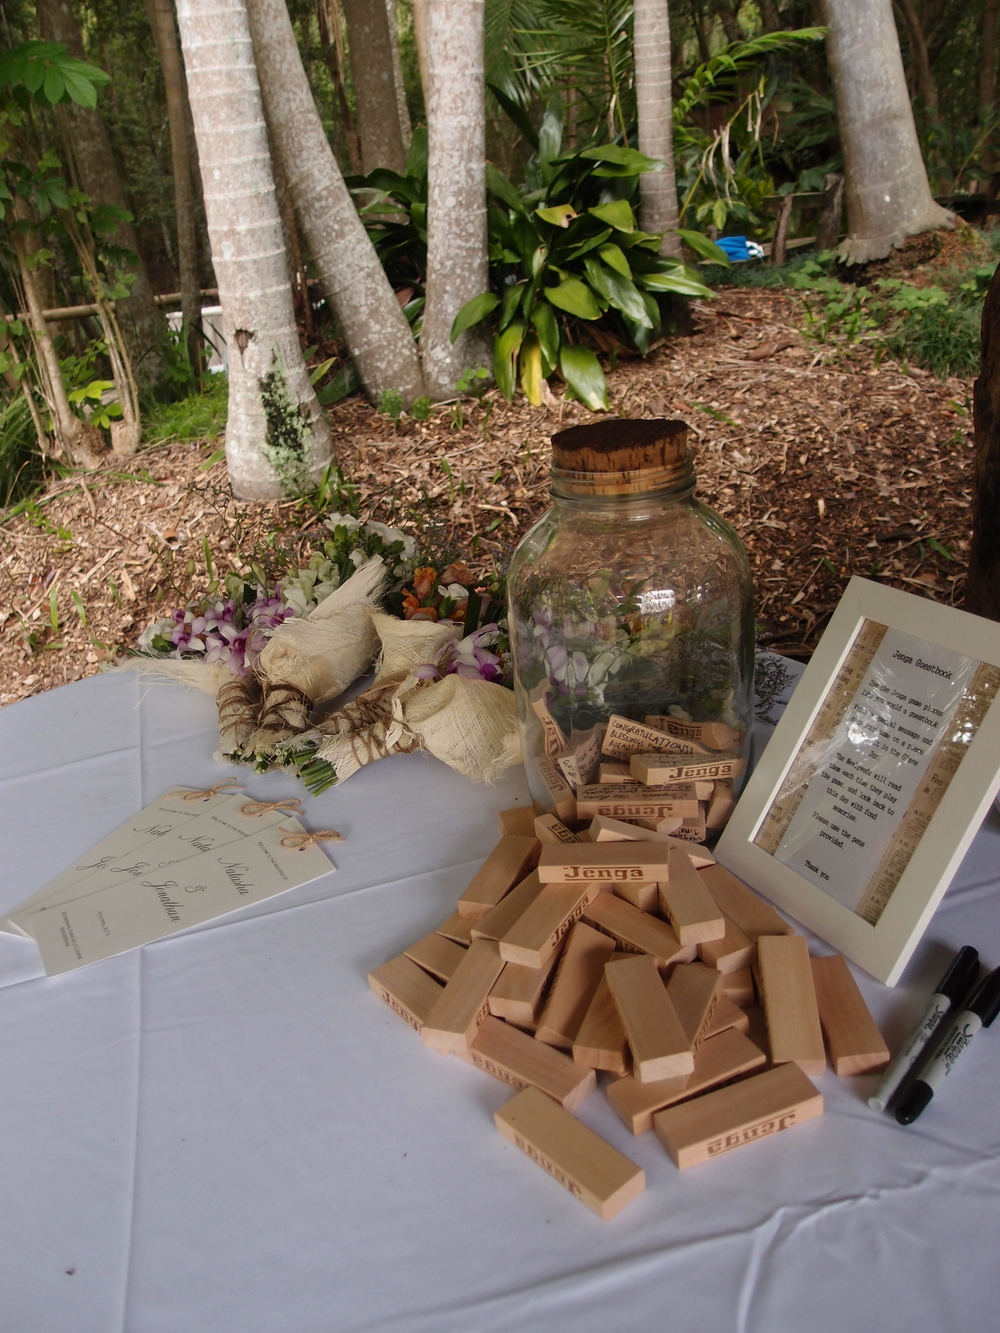 Their guests wrote their well wishes on jenga blocks.